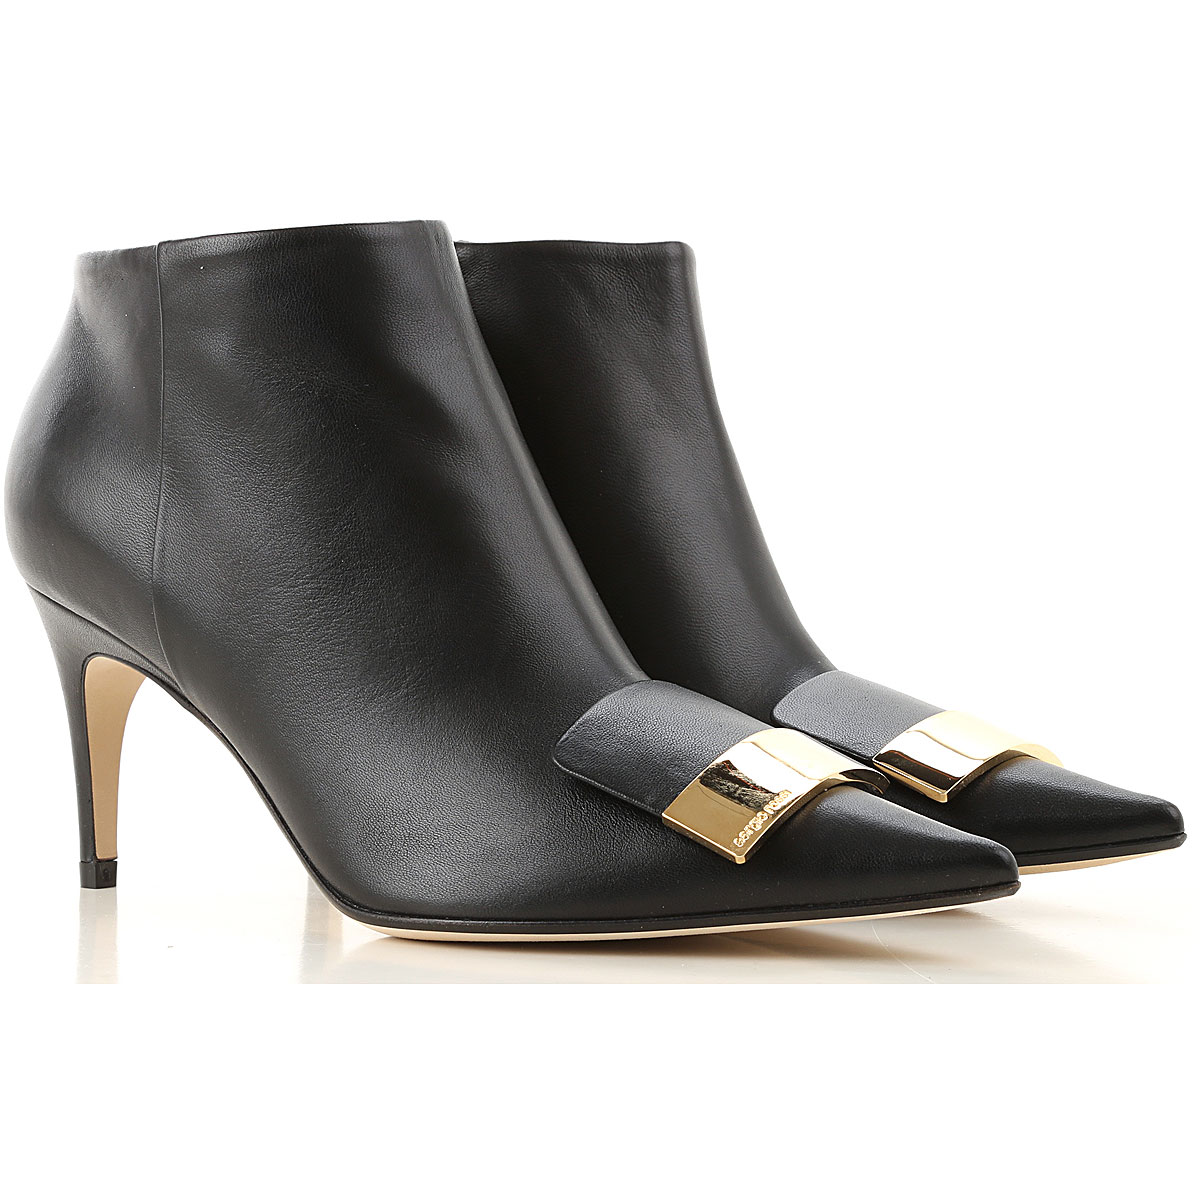 Sergio Rossi Boots for Women, Booties On Sale, Black, Leather, 2019, 10 7 8 9